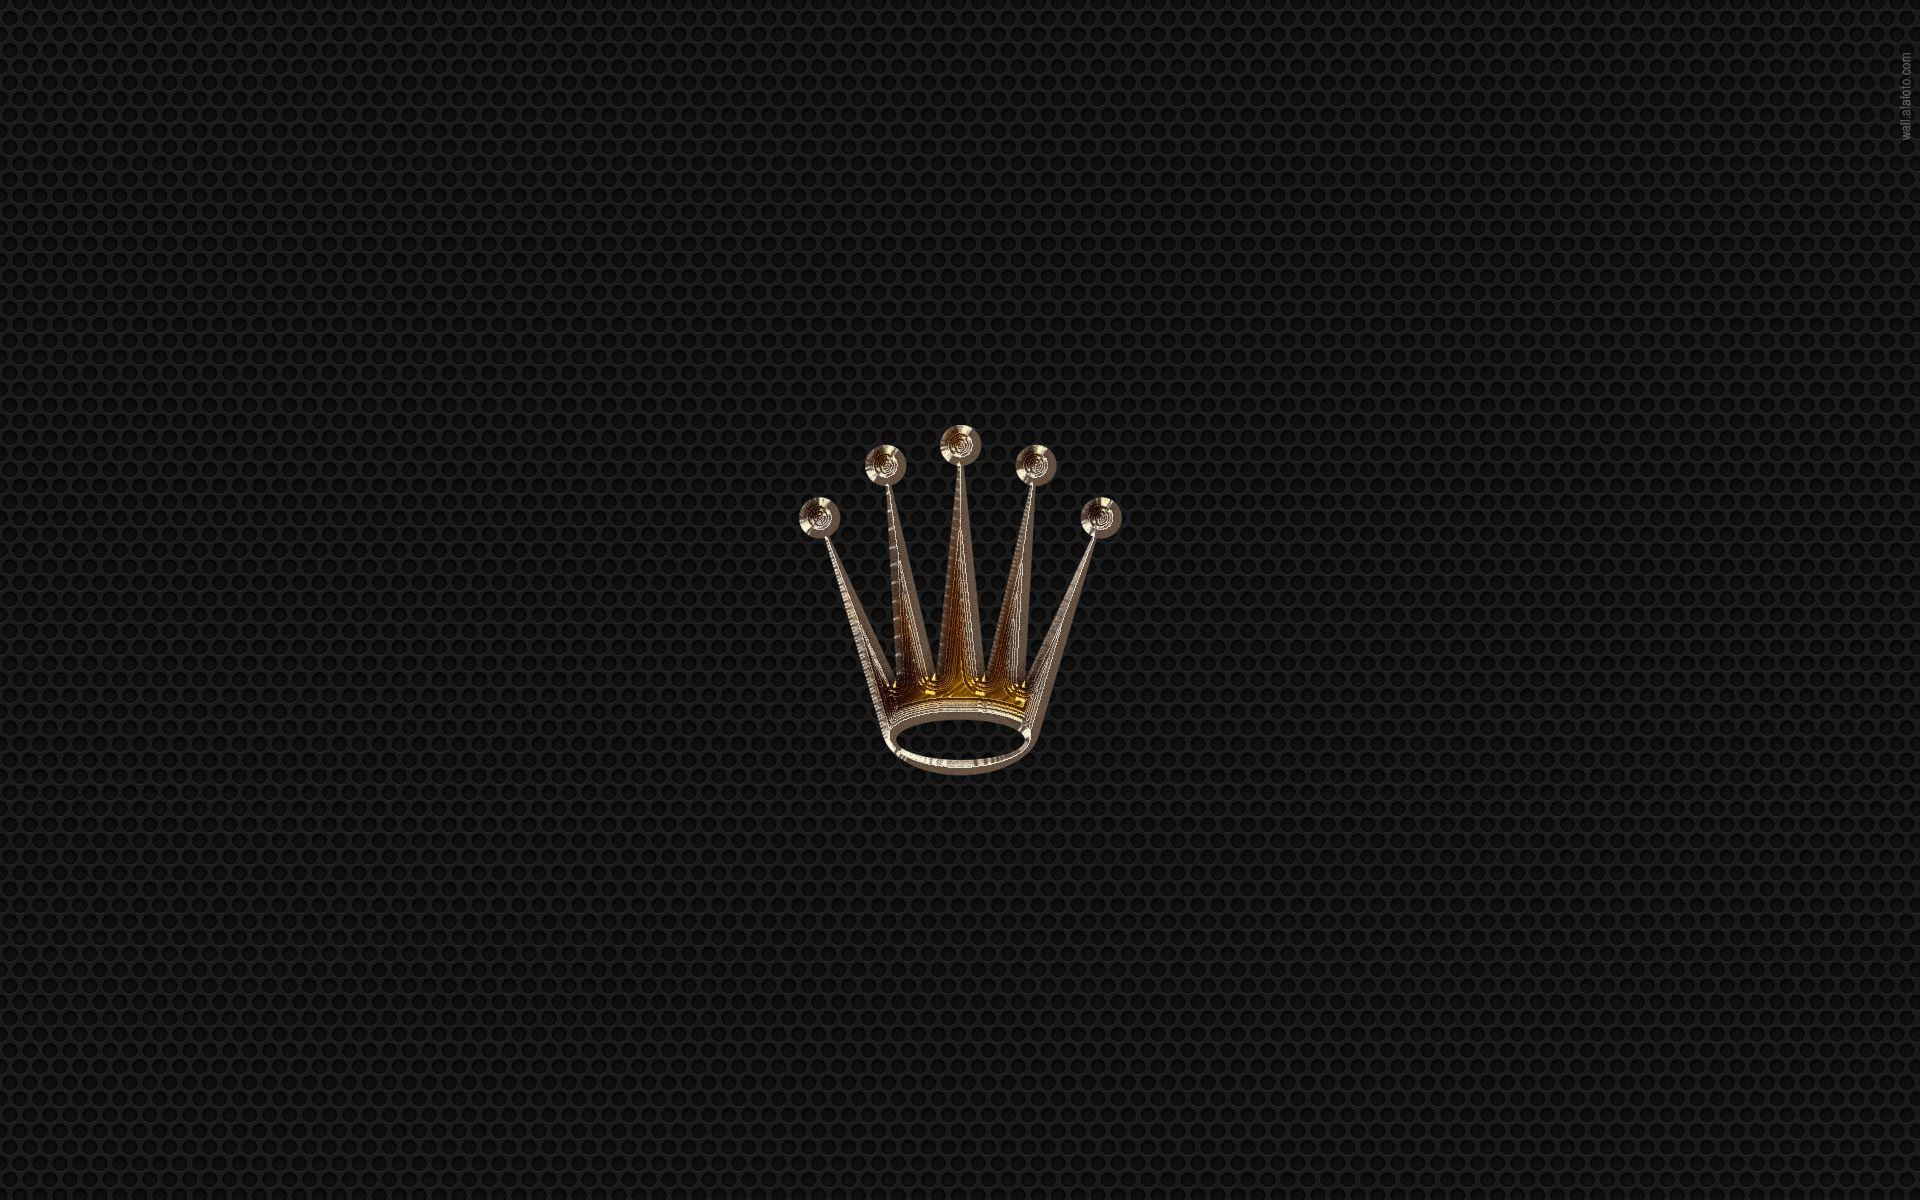 Rolex Wallpapers, Gallery of 32 Rolex Backgrounds, Wallpapers